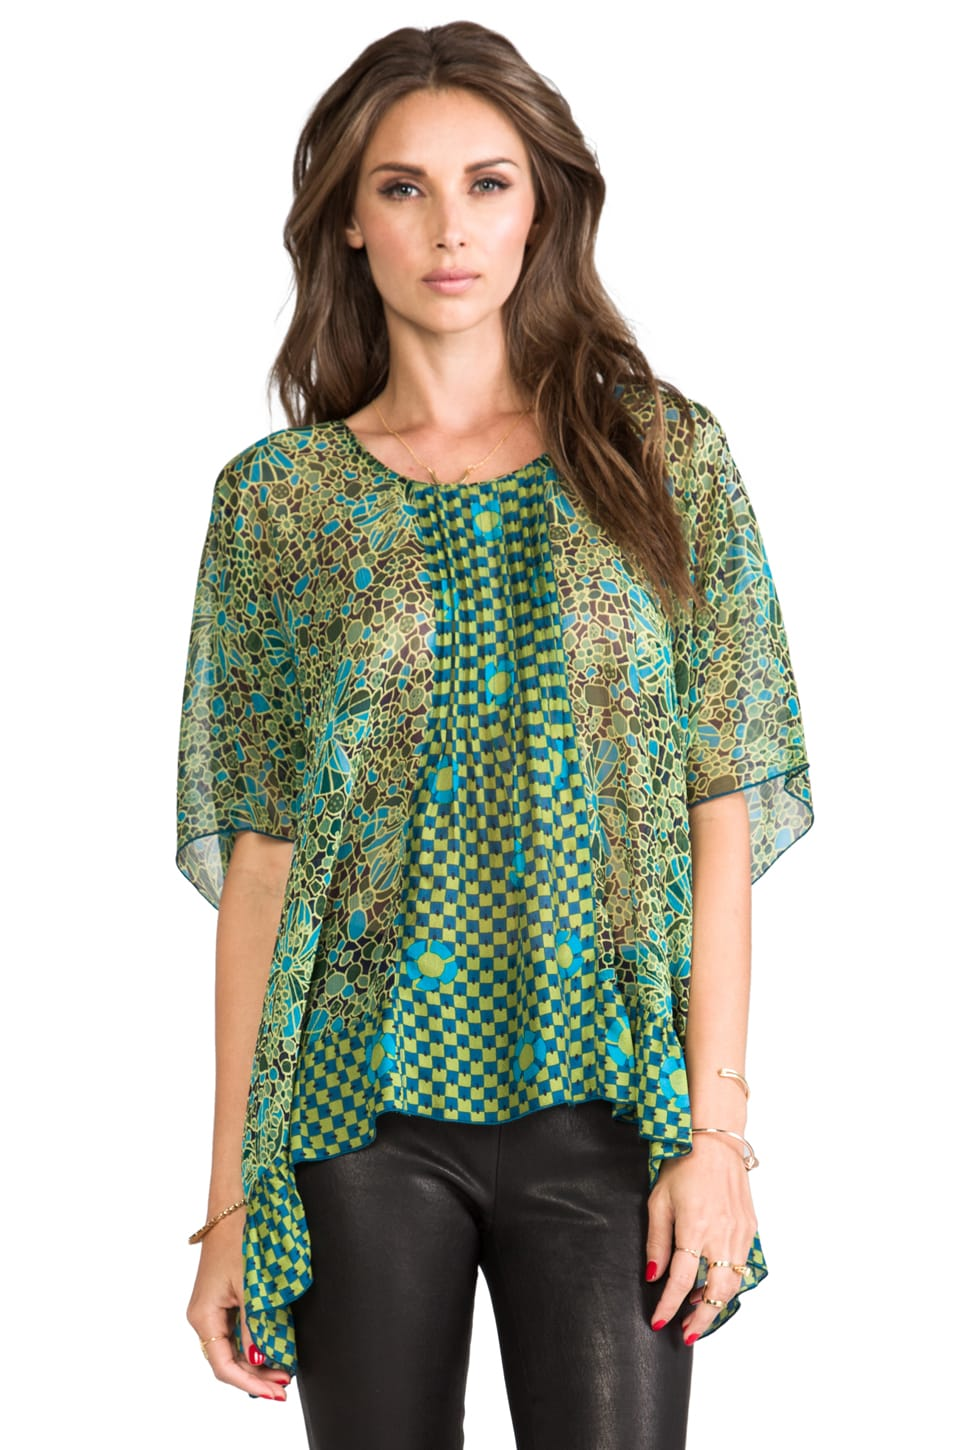 Anna Sui Pop Squares Printe Mesh and Mosaic Flora Print Crinkle Chiffon Top in Cerulean